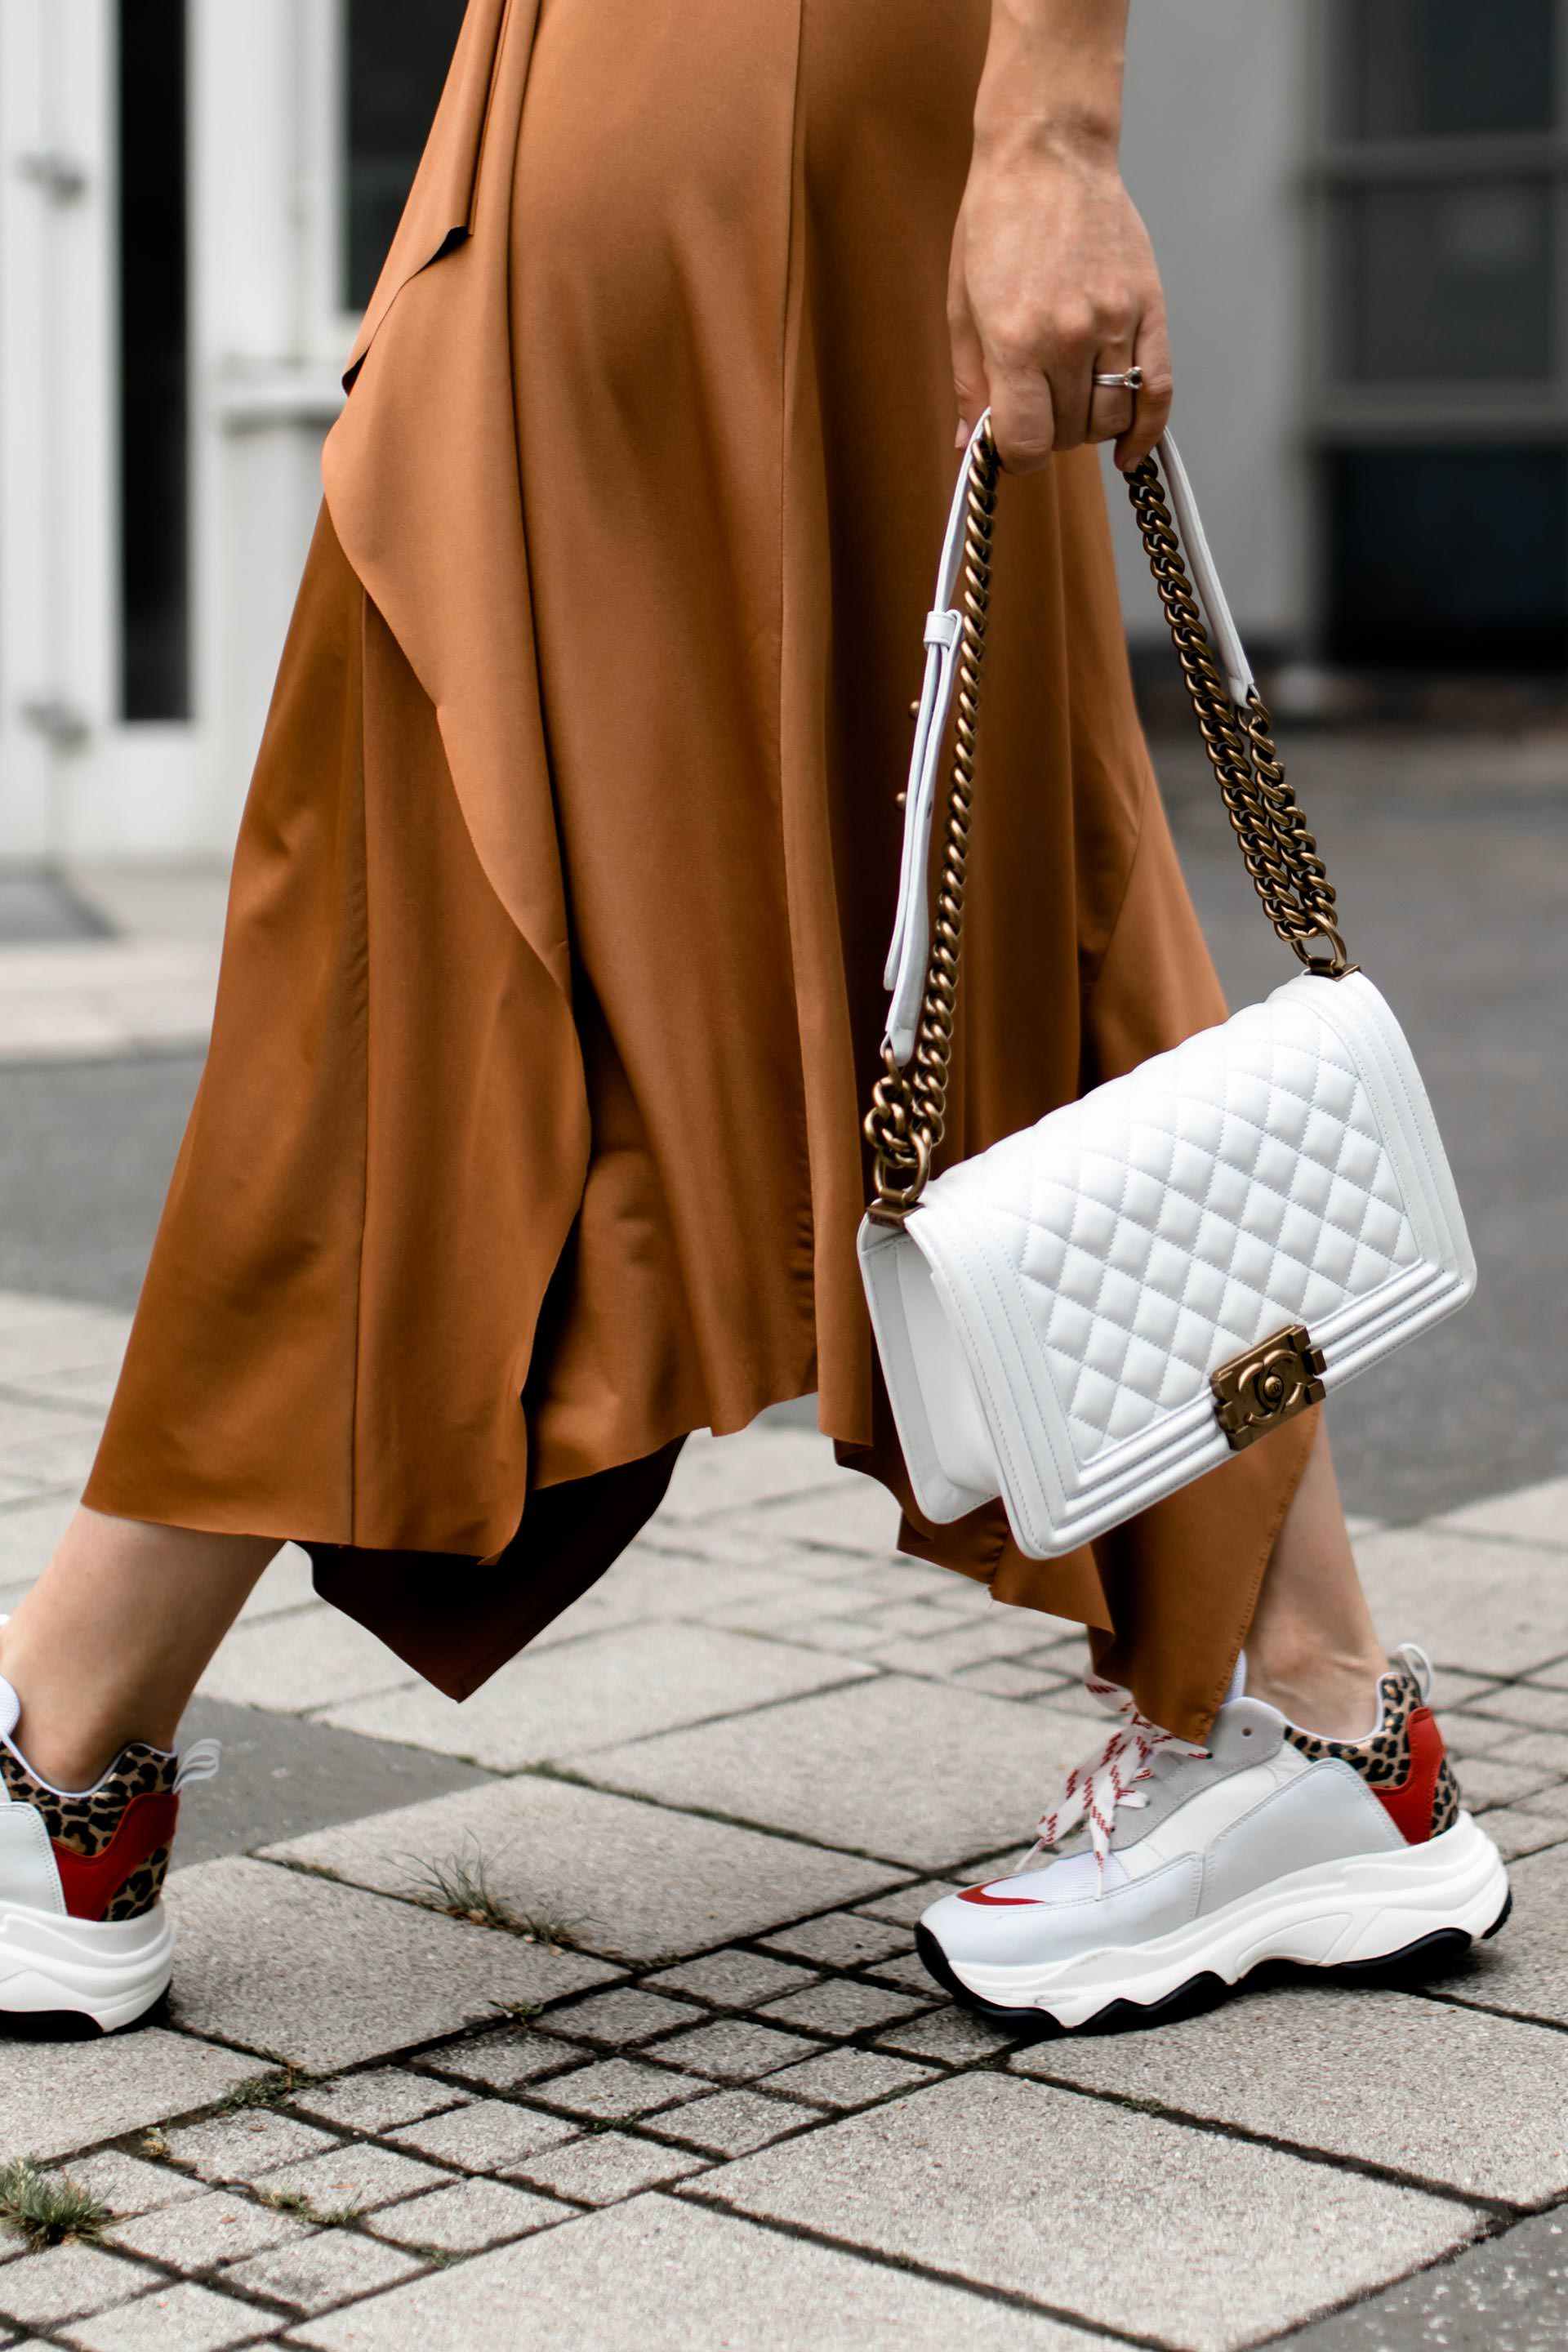 enthält unbeauftragte Werbung, Chunky Sneakers Trend, Dad Sneakers stylen, Ugly Trainers kombinieren, Sommer Outfit mit Midirock, Alltagsoutfit mit Rock und Sneakers, Chanel Boy Tasche, Streetstyle, Modeblogger, www.whoismocca.com #chunky #sneakers #sommermode #ootd #modetrends #chanel